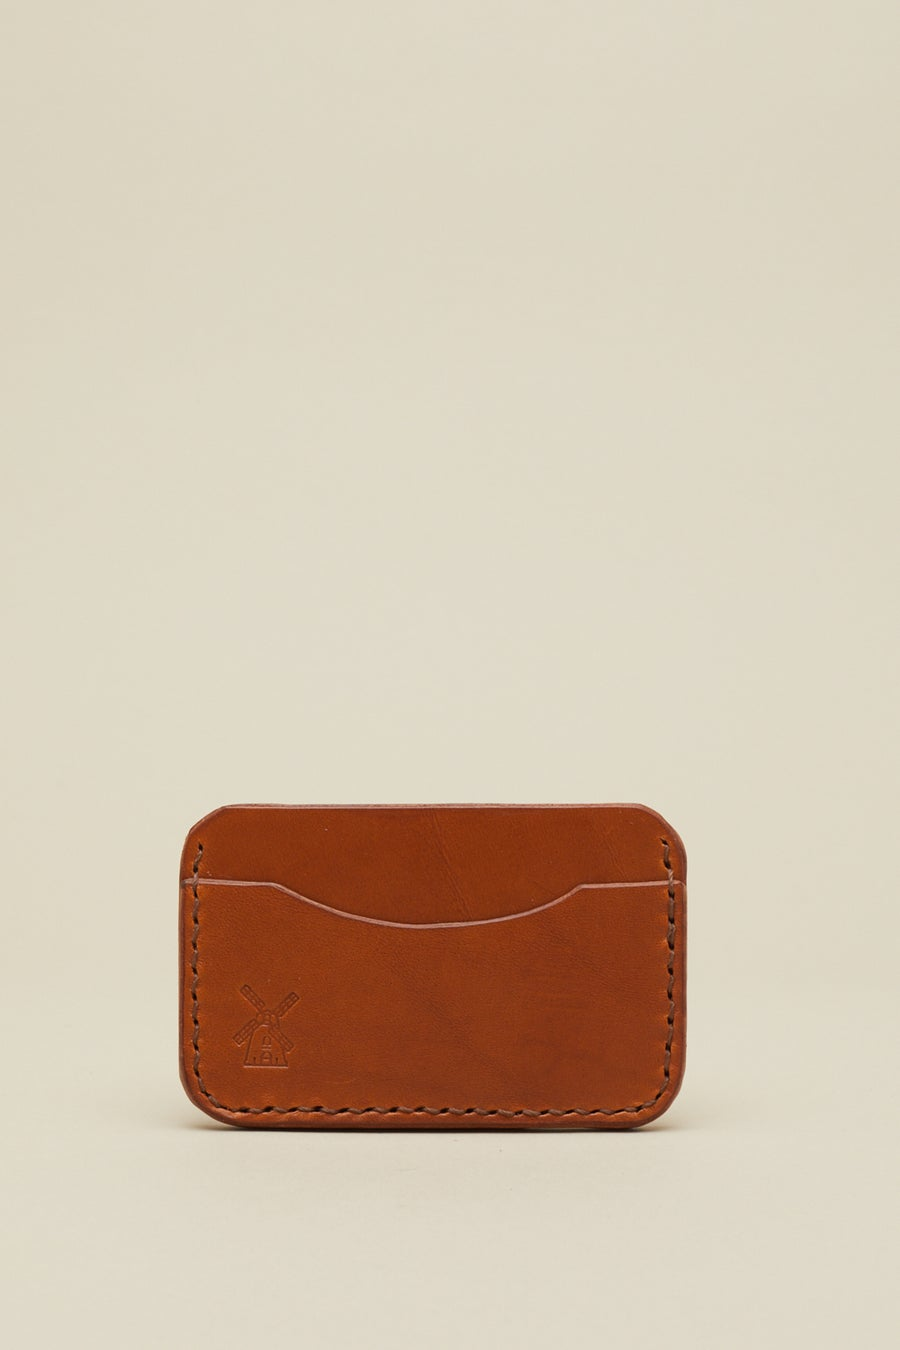 Image of Card Holder in Tan